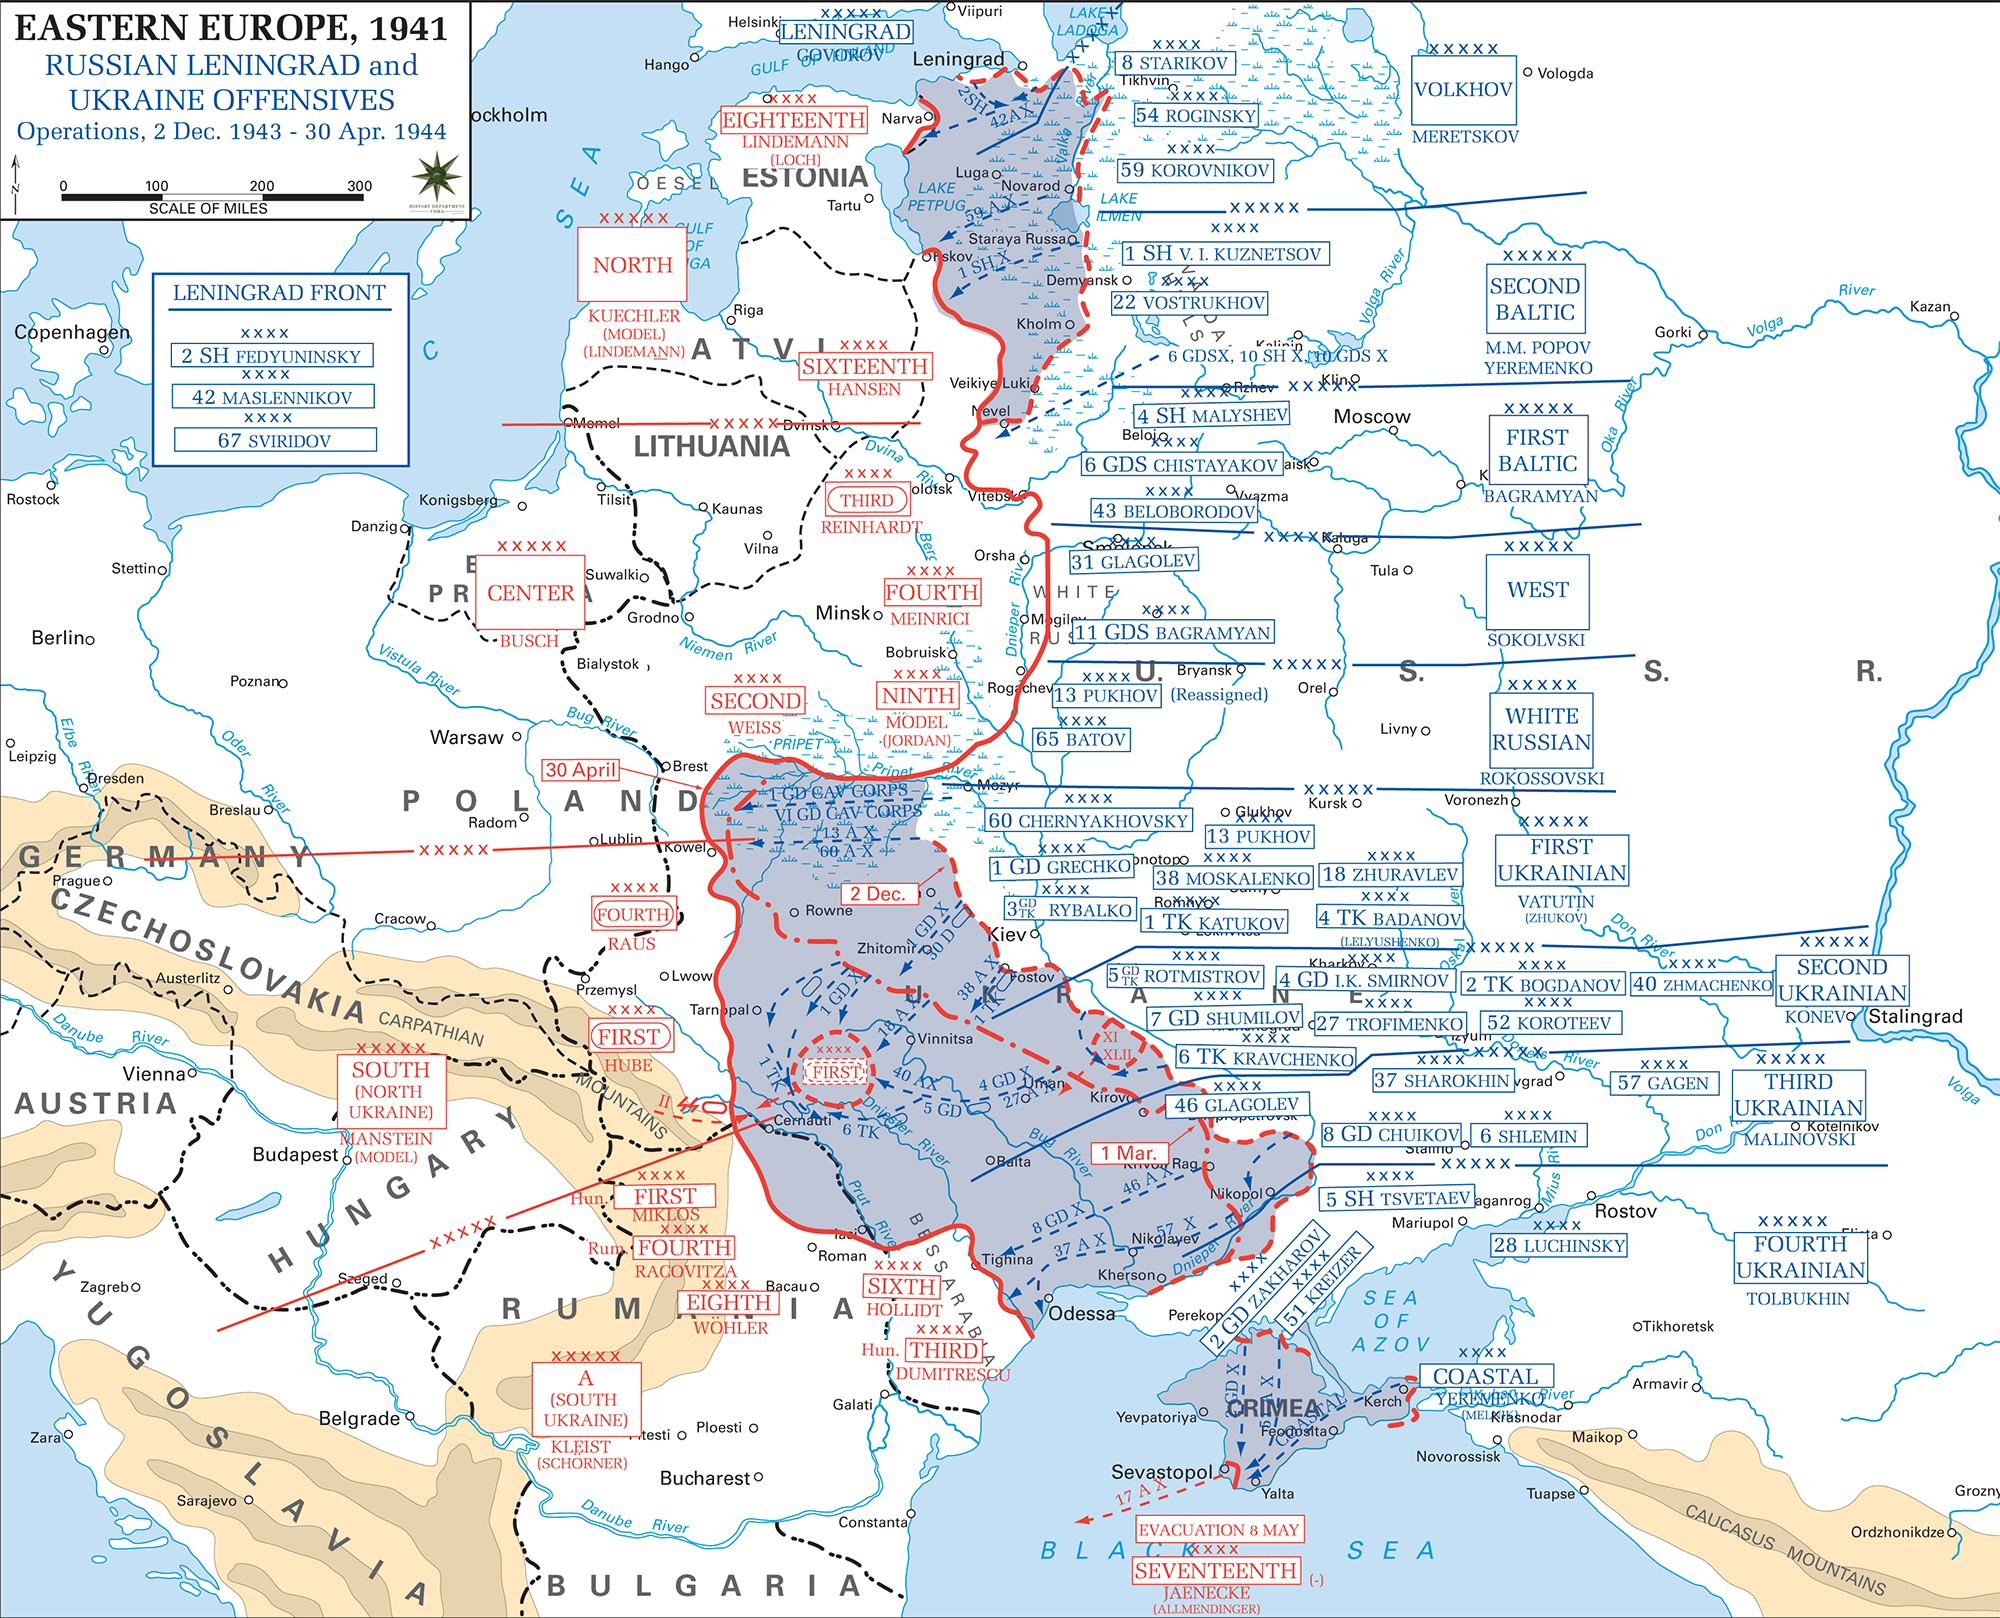 Map of russia in wwii december 2 1943 april 30 1944 map of wwii russia 194344 leningrad and ukraine offensives december 2 gumiabroncs Gallery